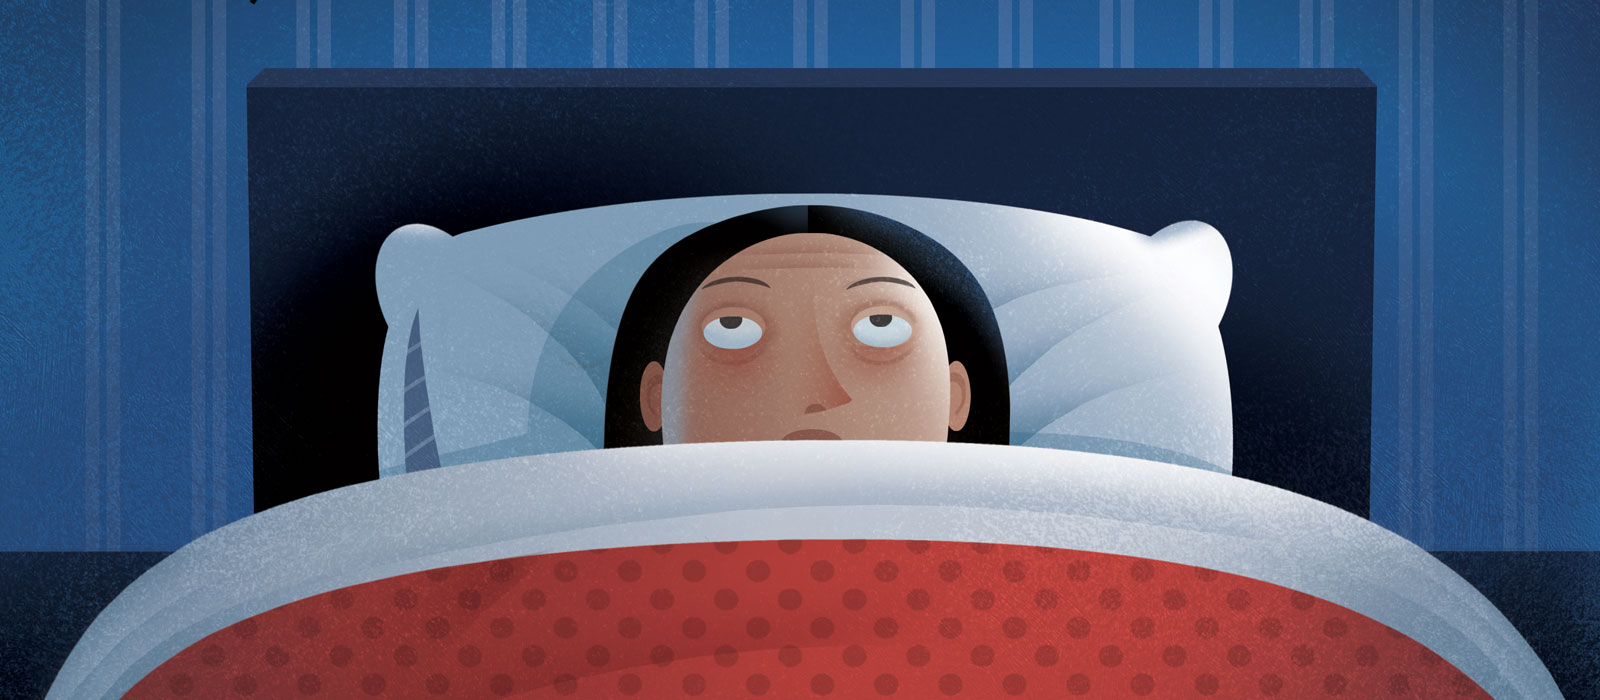 Sleep-Wake Disturbances in Patients With Cancer